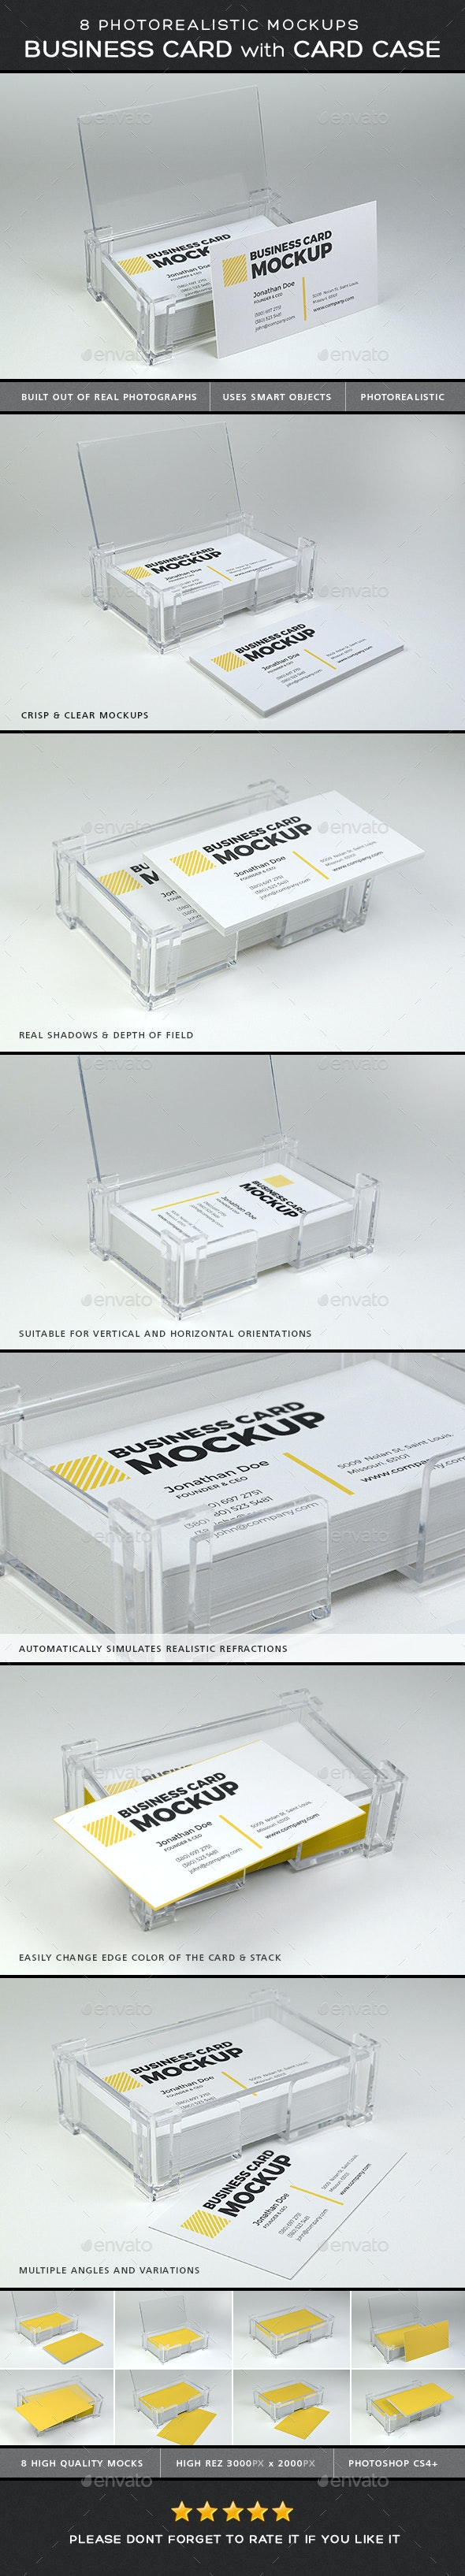 Photorealistic Business Card Mock-ups with Card Case - Product Mock-Ups Graphics